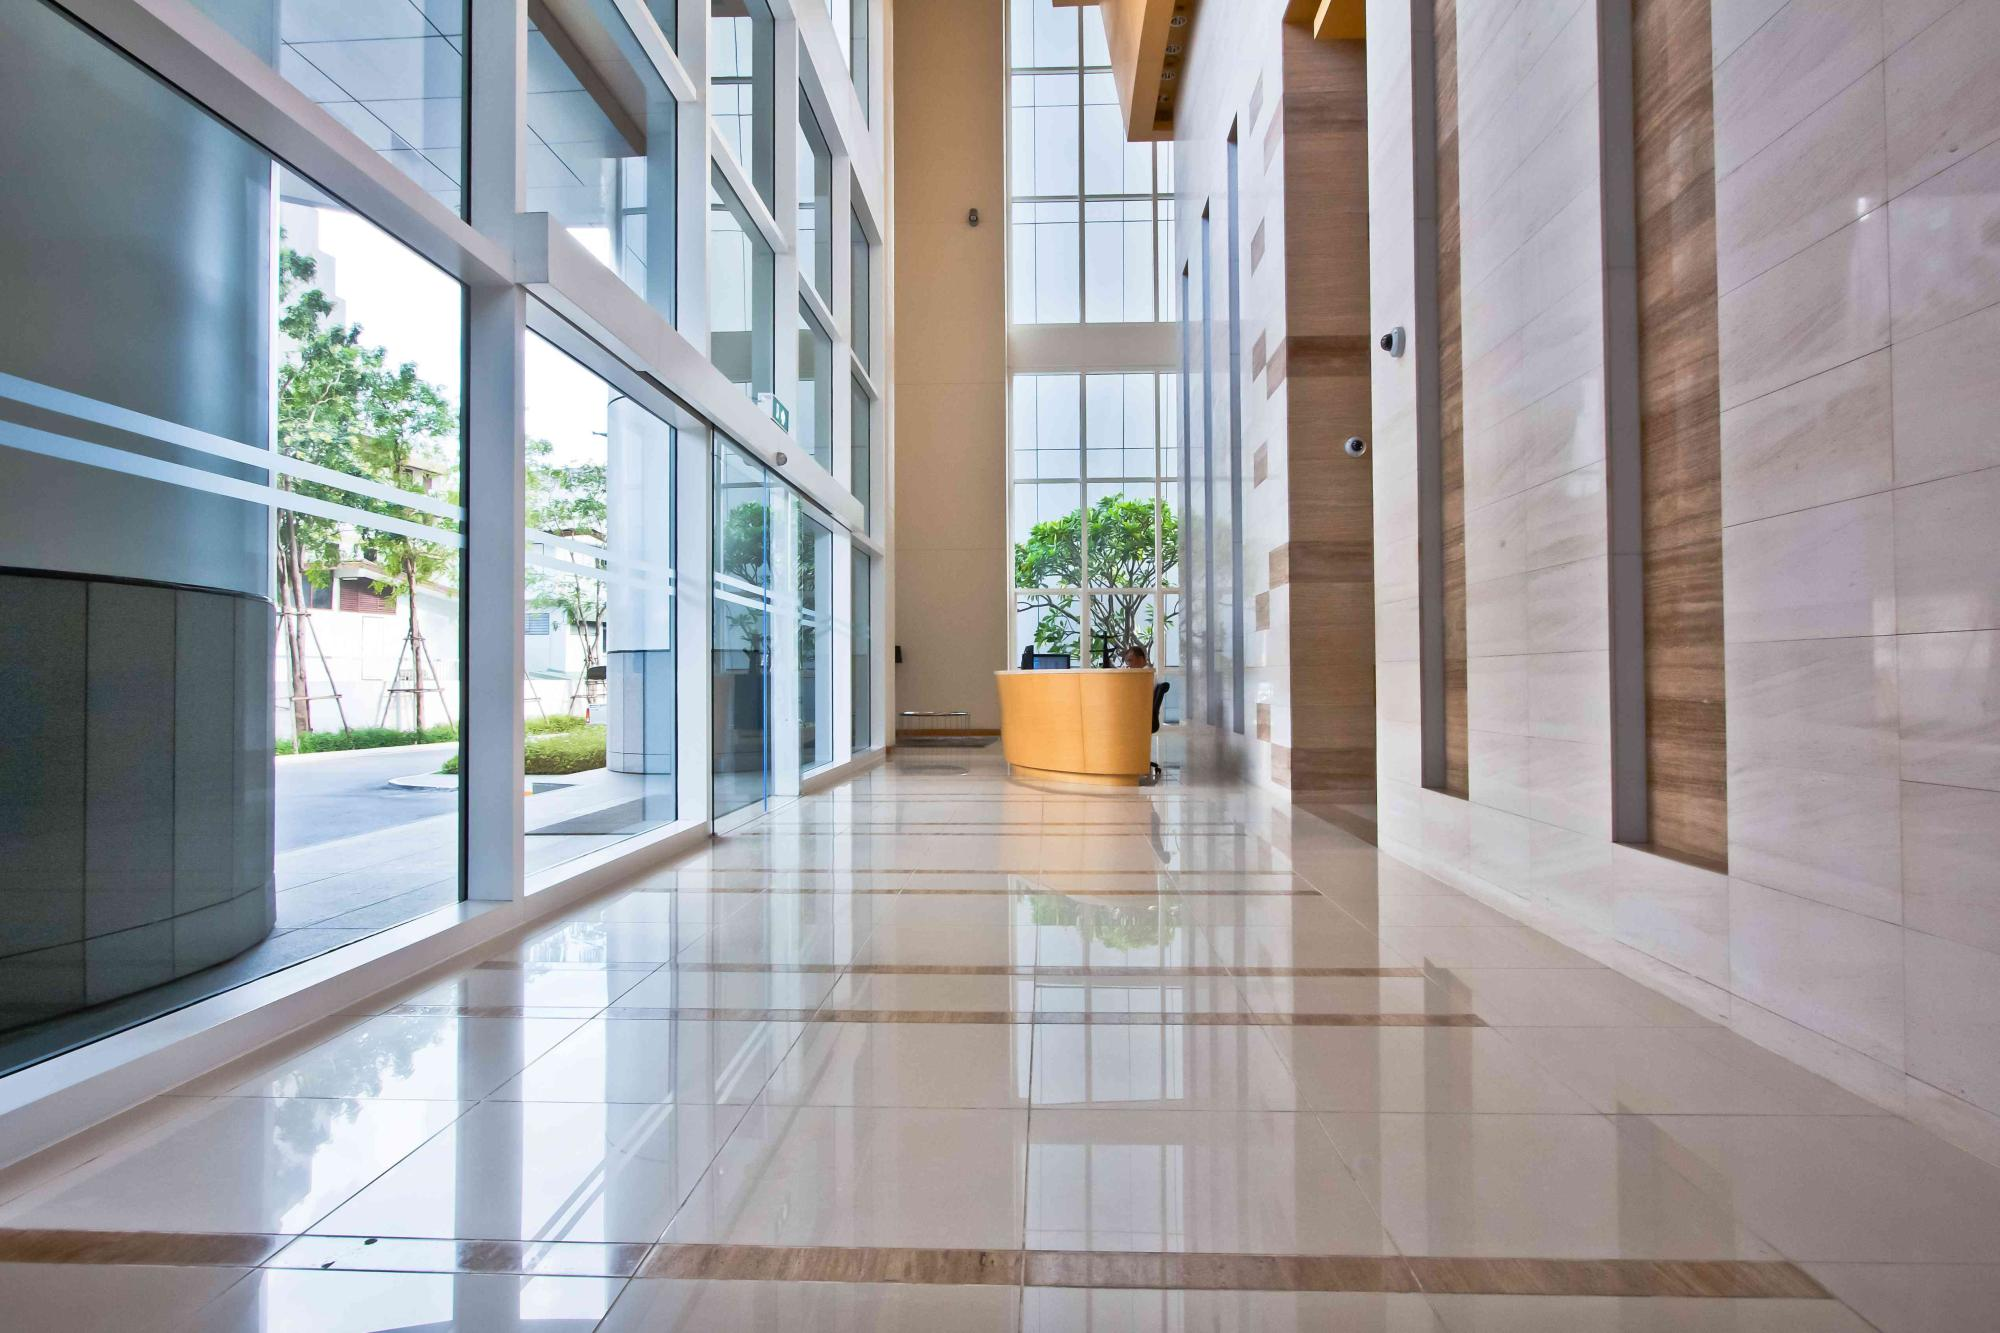 Greater Puget Sound Commercial Floor Cleaning & Restoration